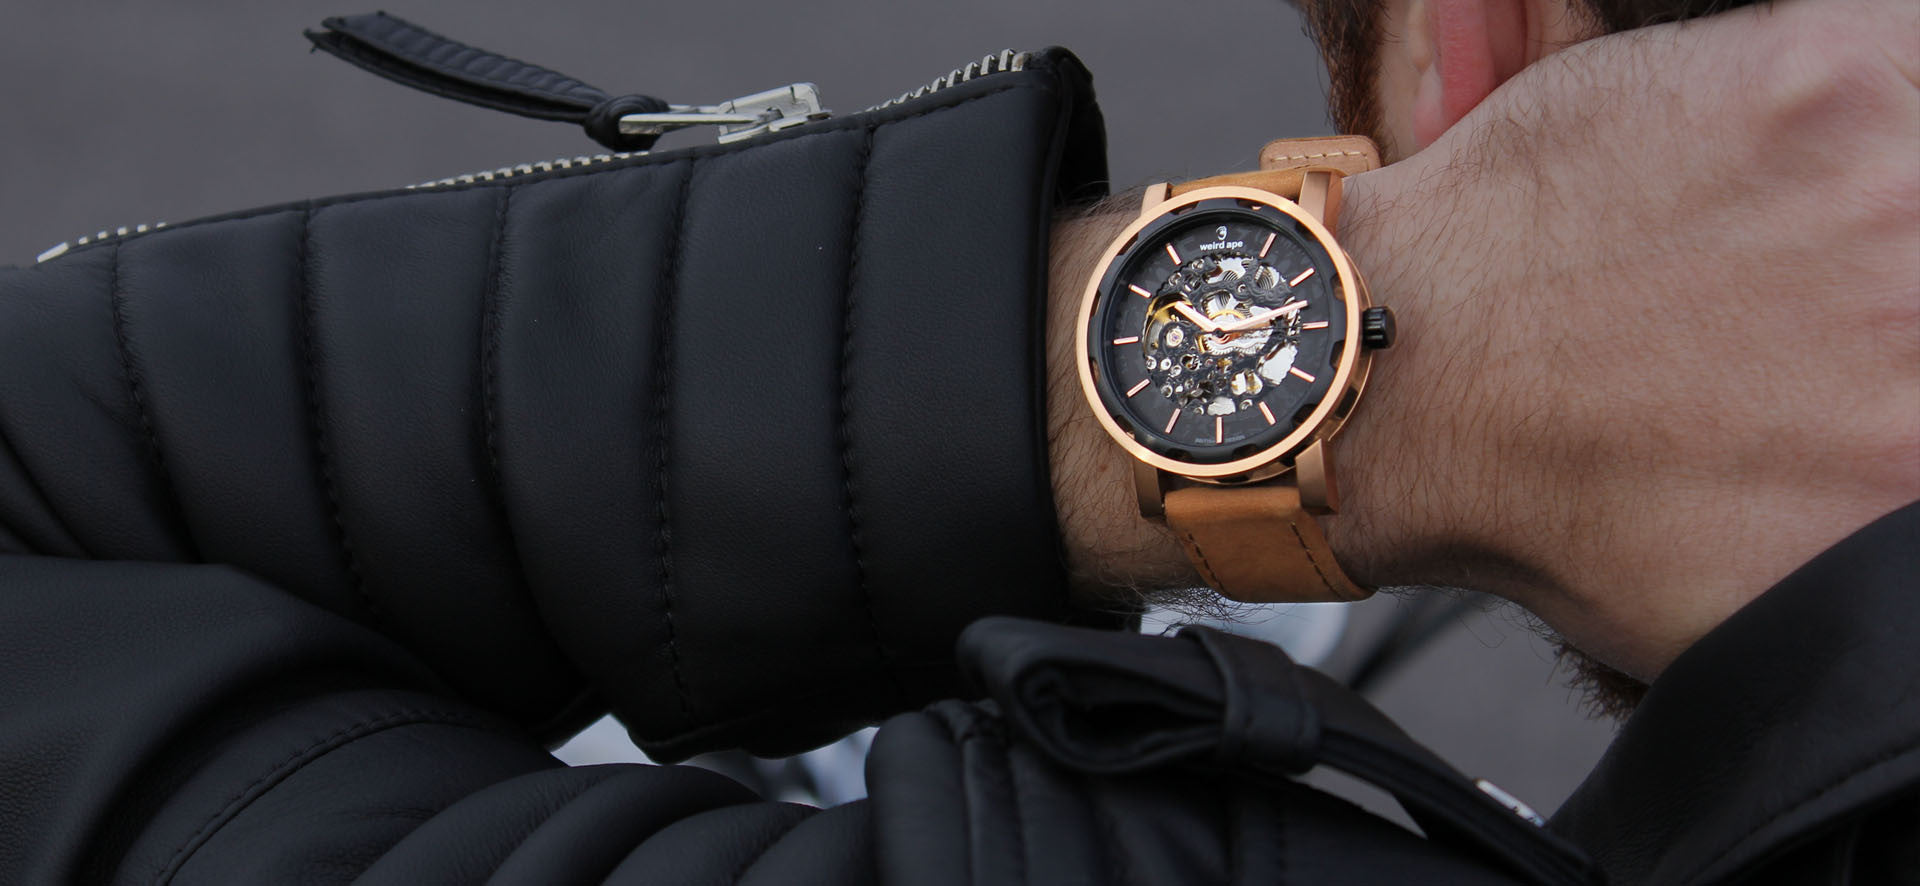 Rose gold skeleton watch with a tan strap in a lifestyle image